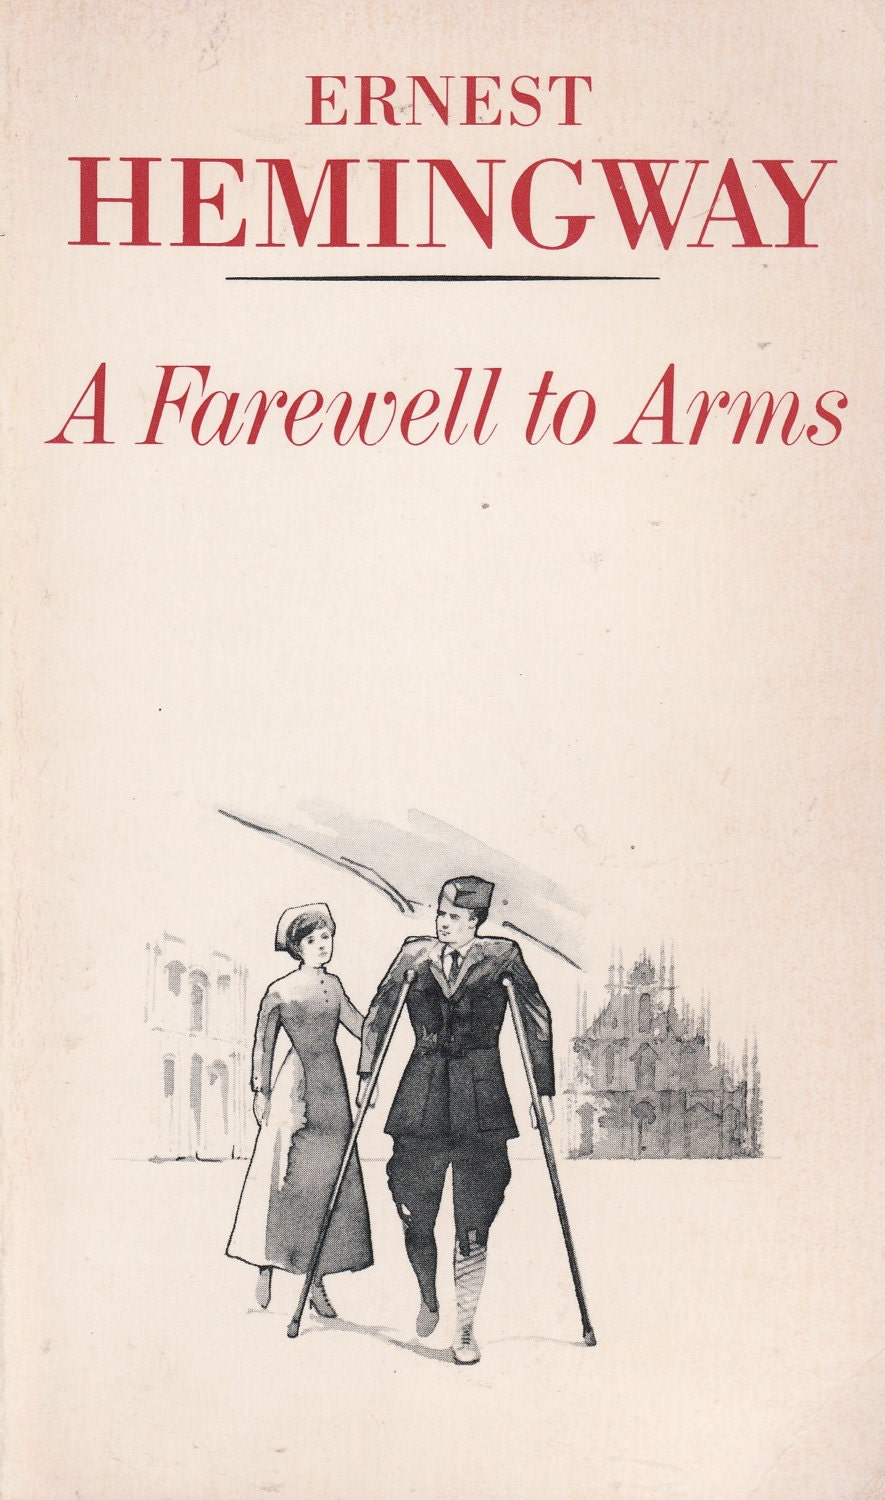 a synopsis of the book a farewell to arms by ernest hemingway A farewell to arms [ernest hemingway] if you have these novels plus the complete short stories book you will be well-stocked with hemingway magic.